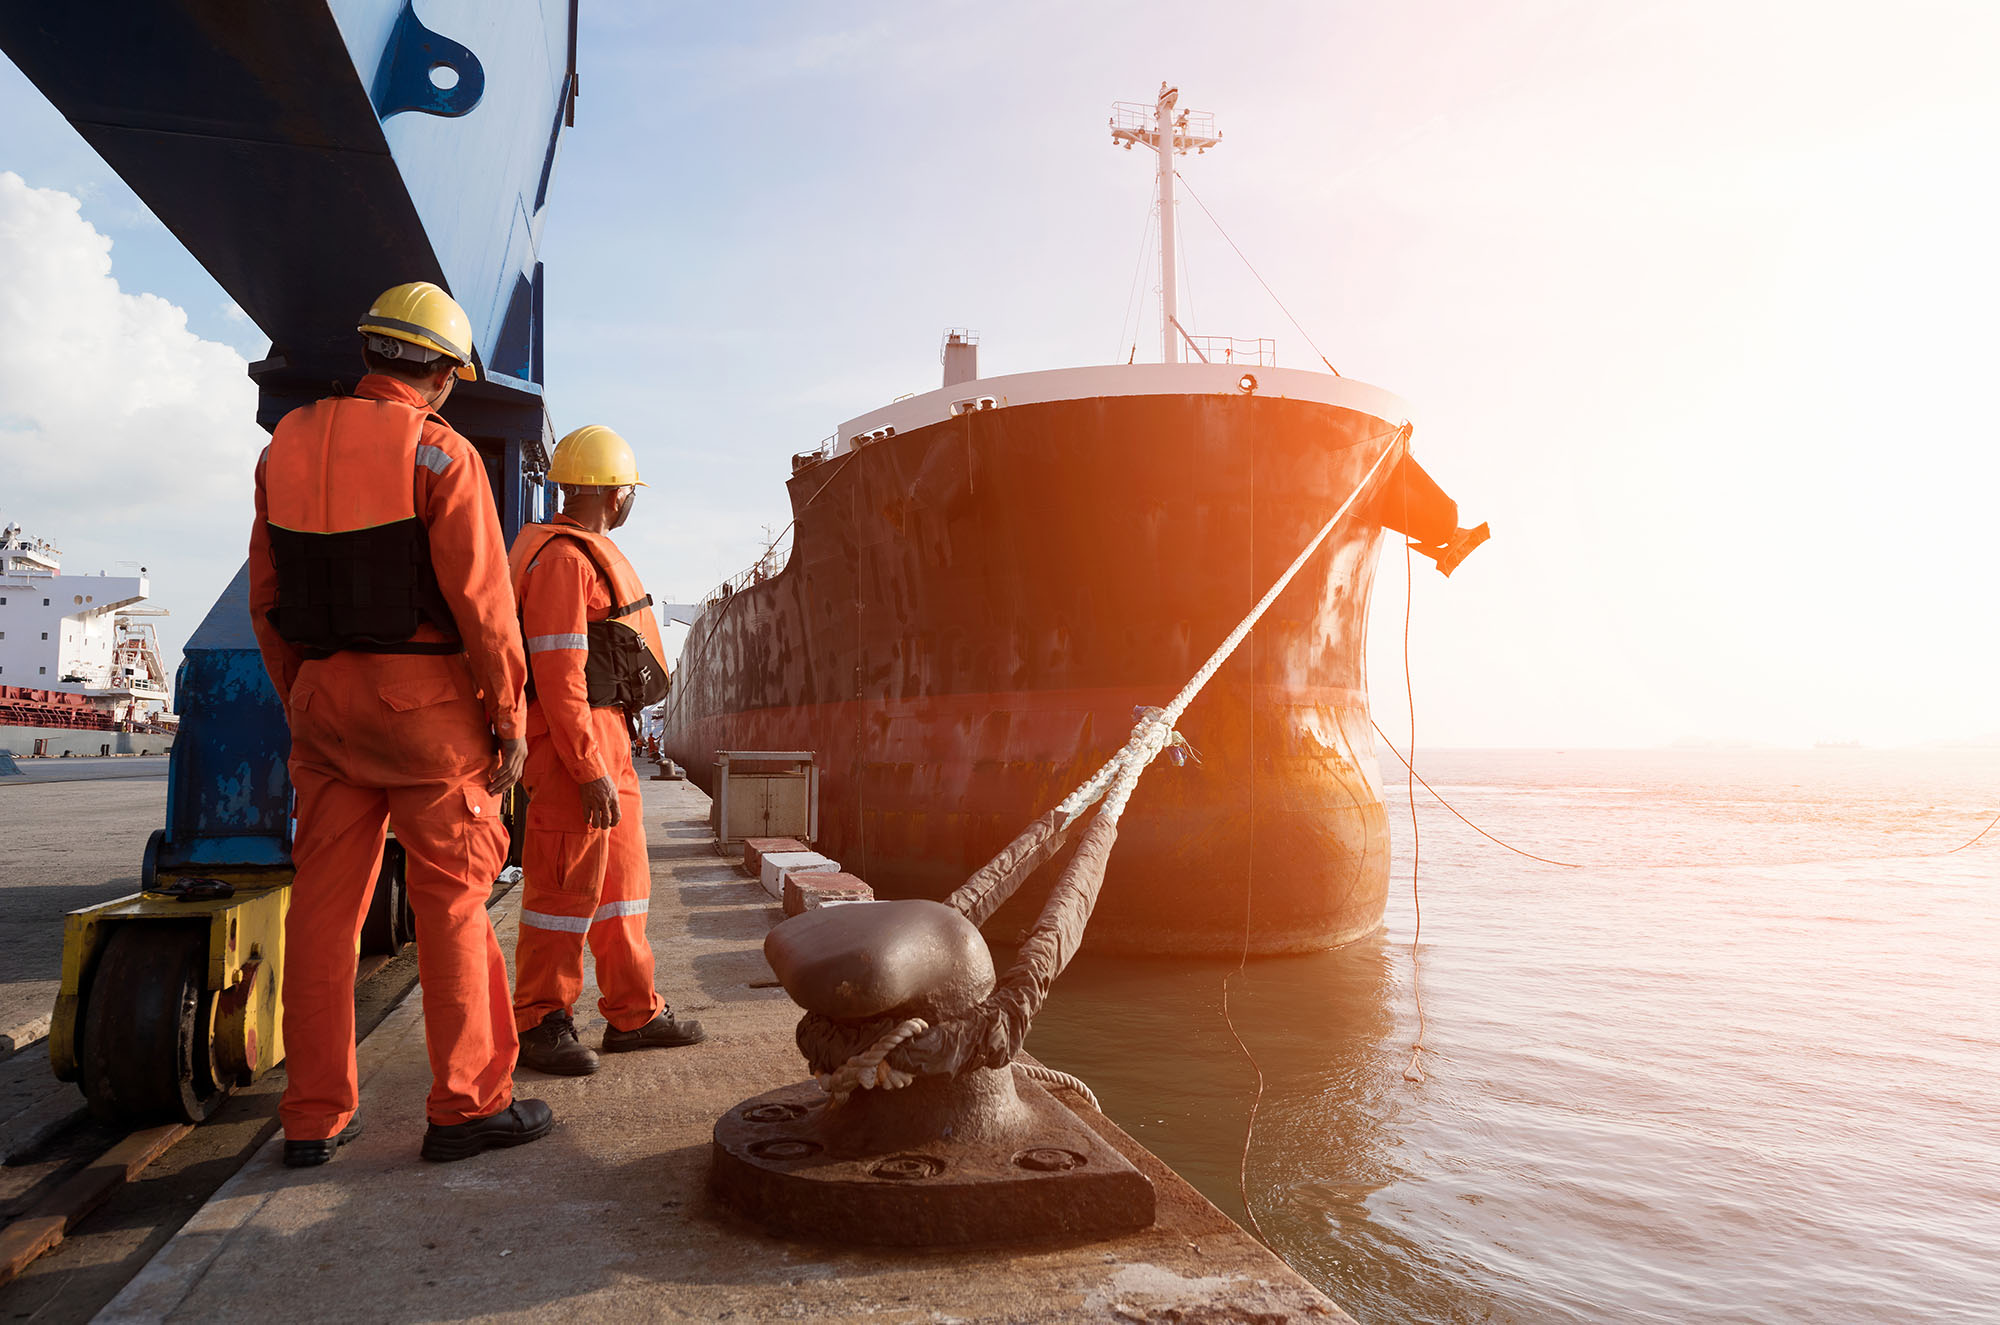 A Guide to Maritime Labour Convention (MLC), 2006 for Maritime Professionals